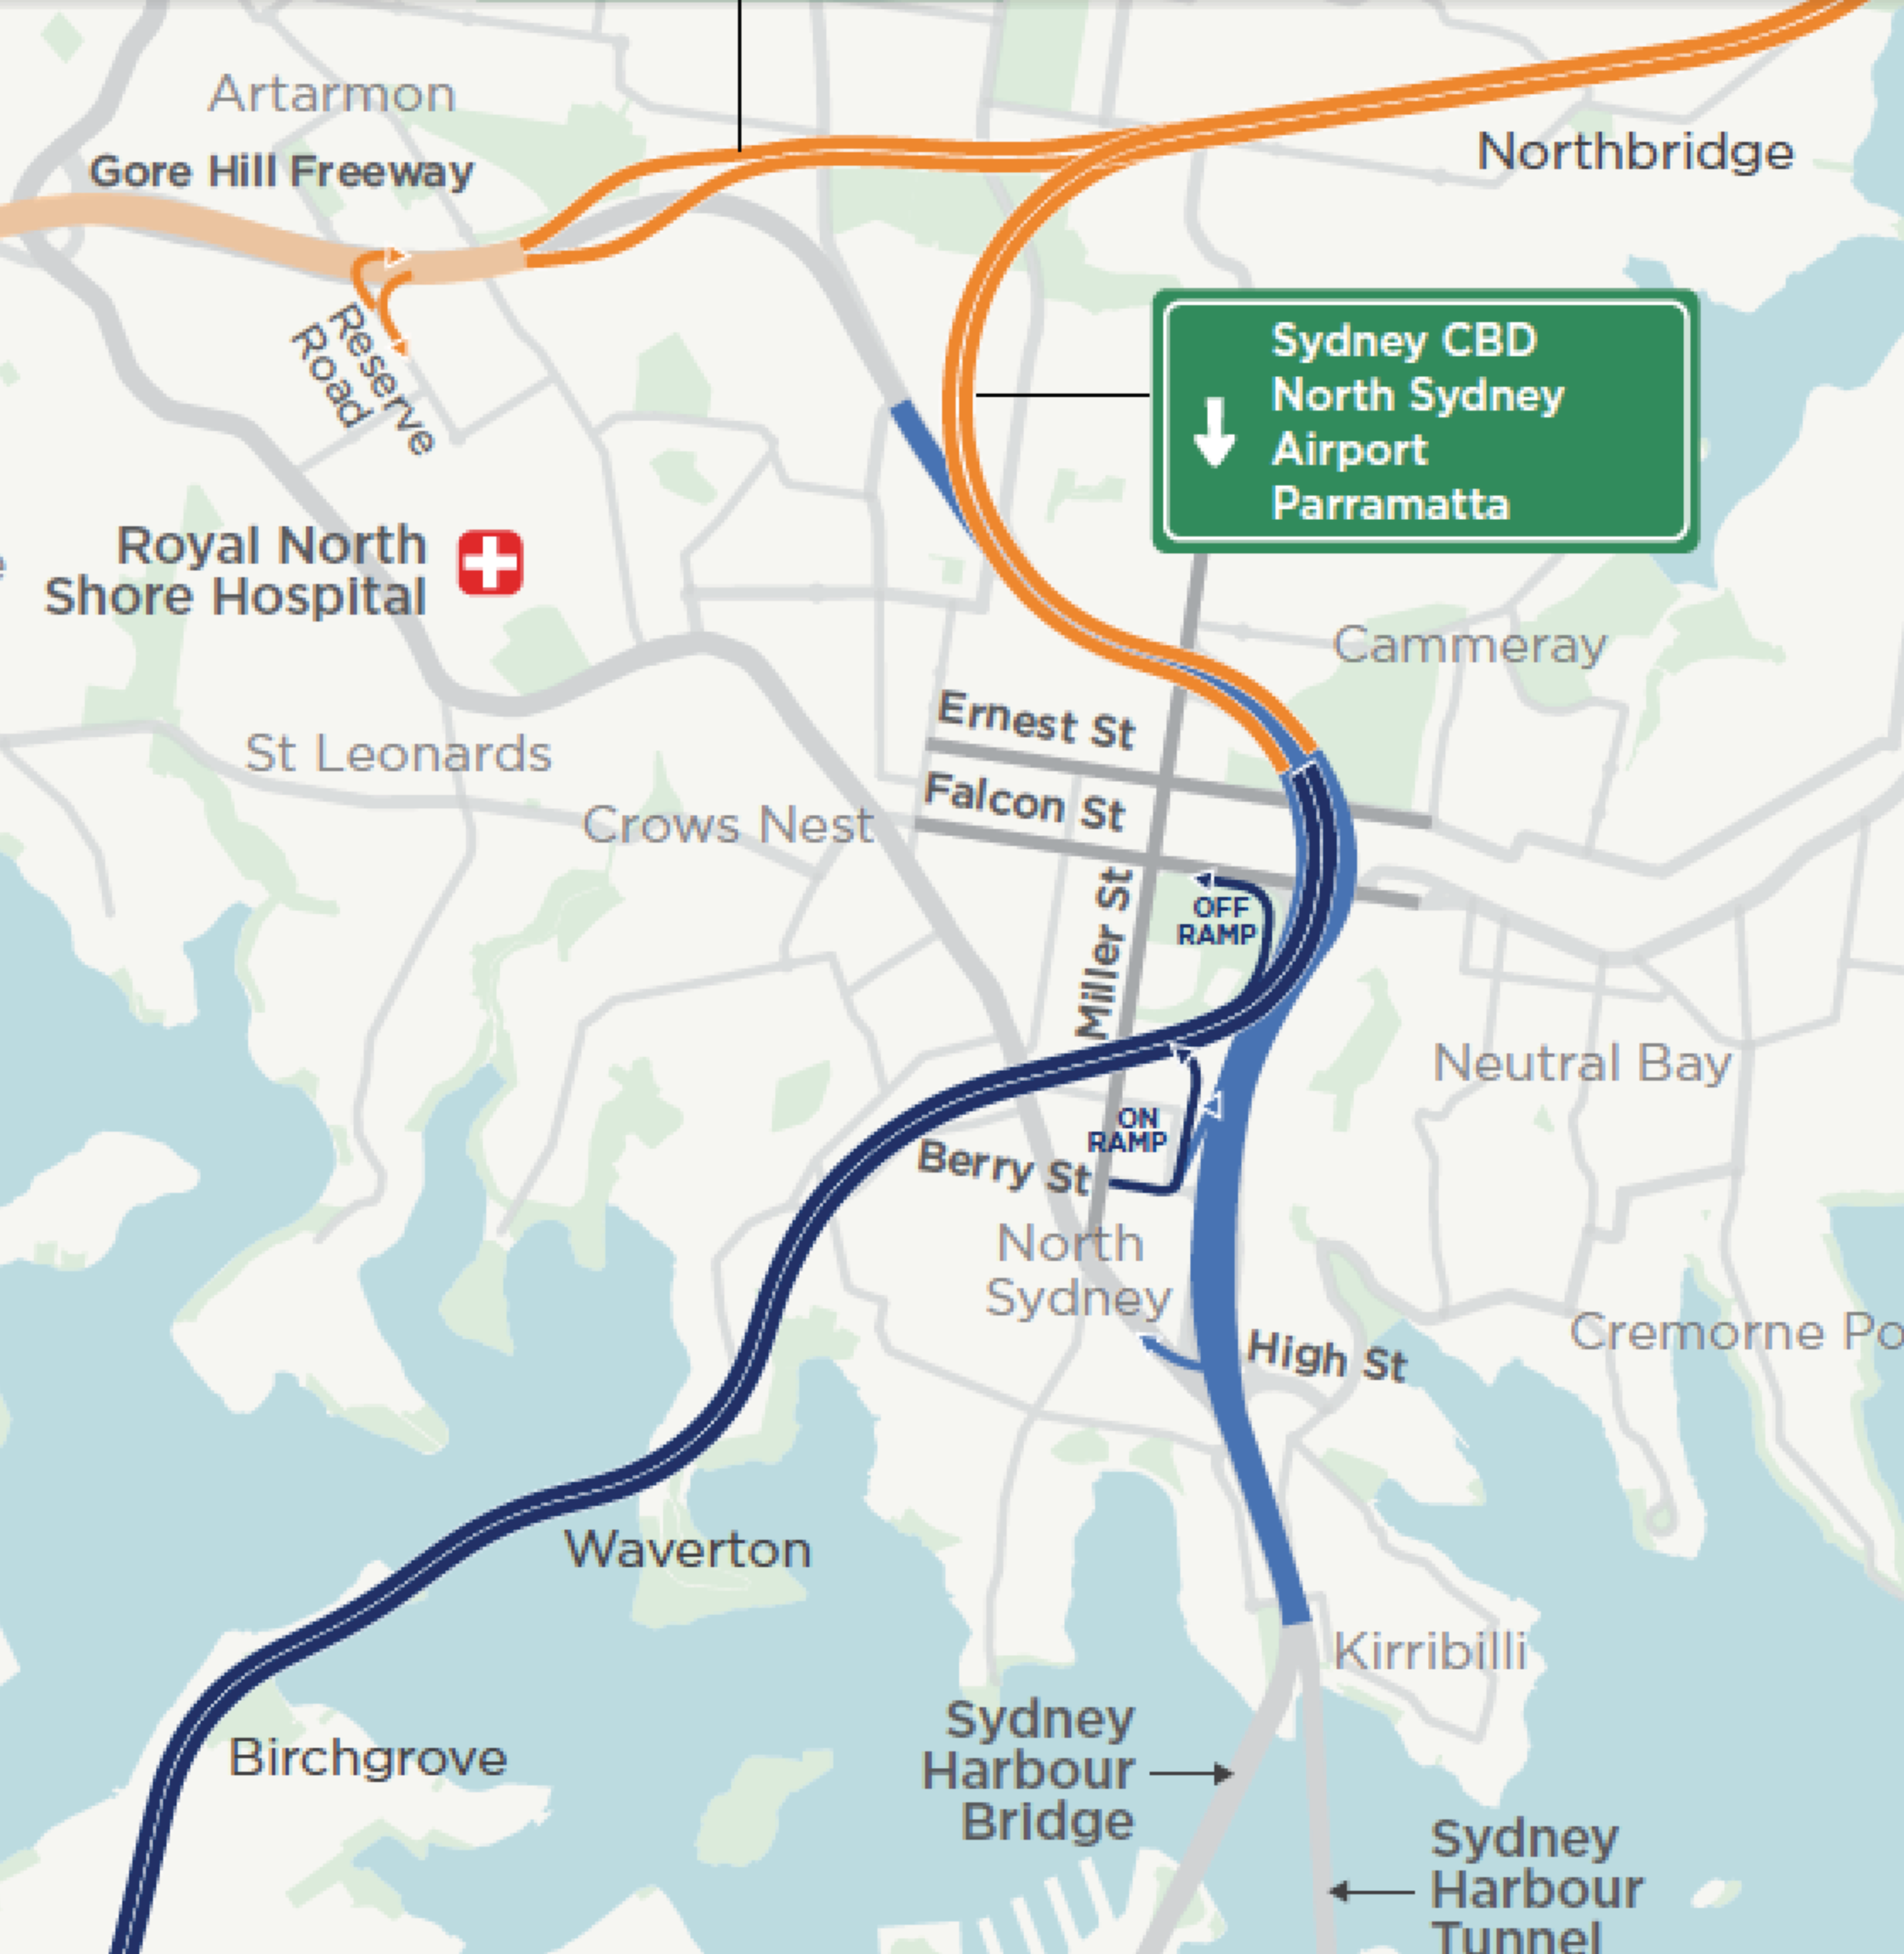 Berry Nsw Map For the NSW Government, the North Sydney city centre is just